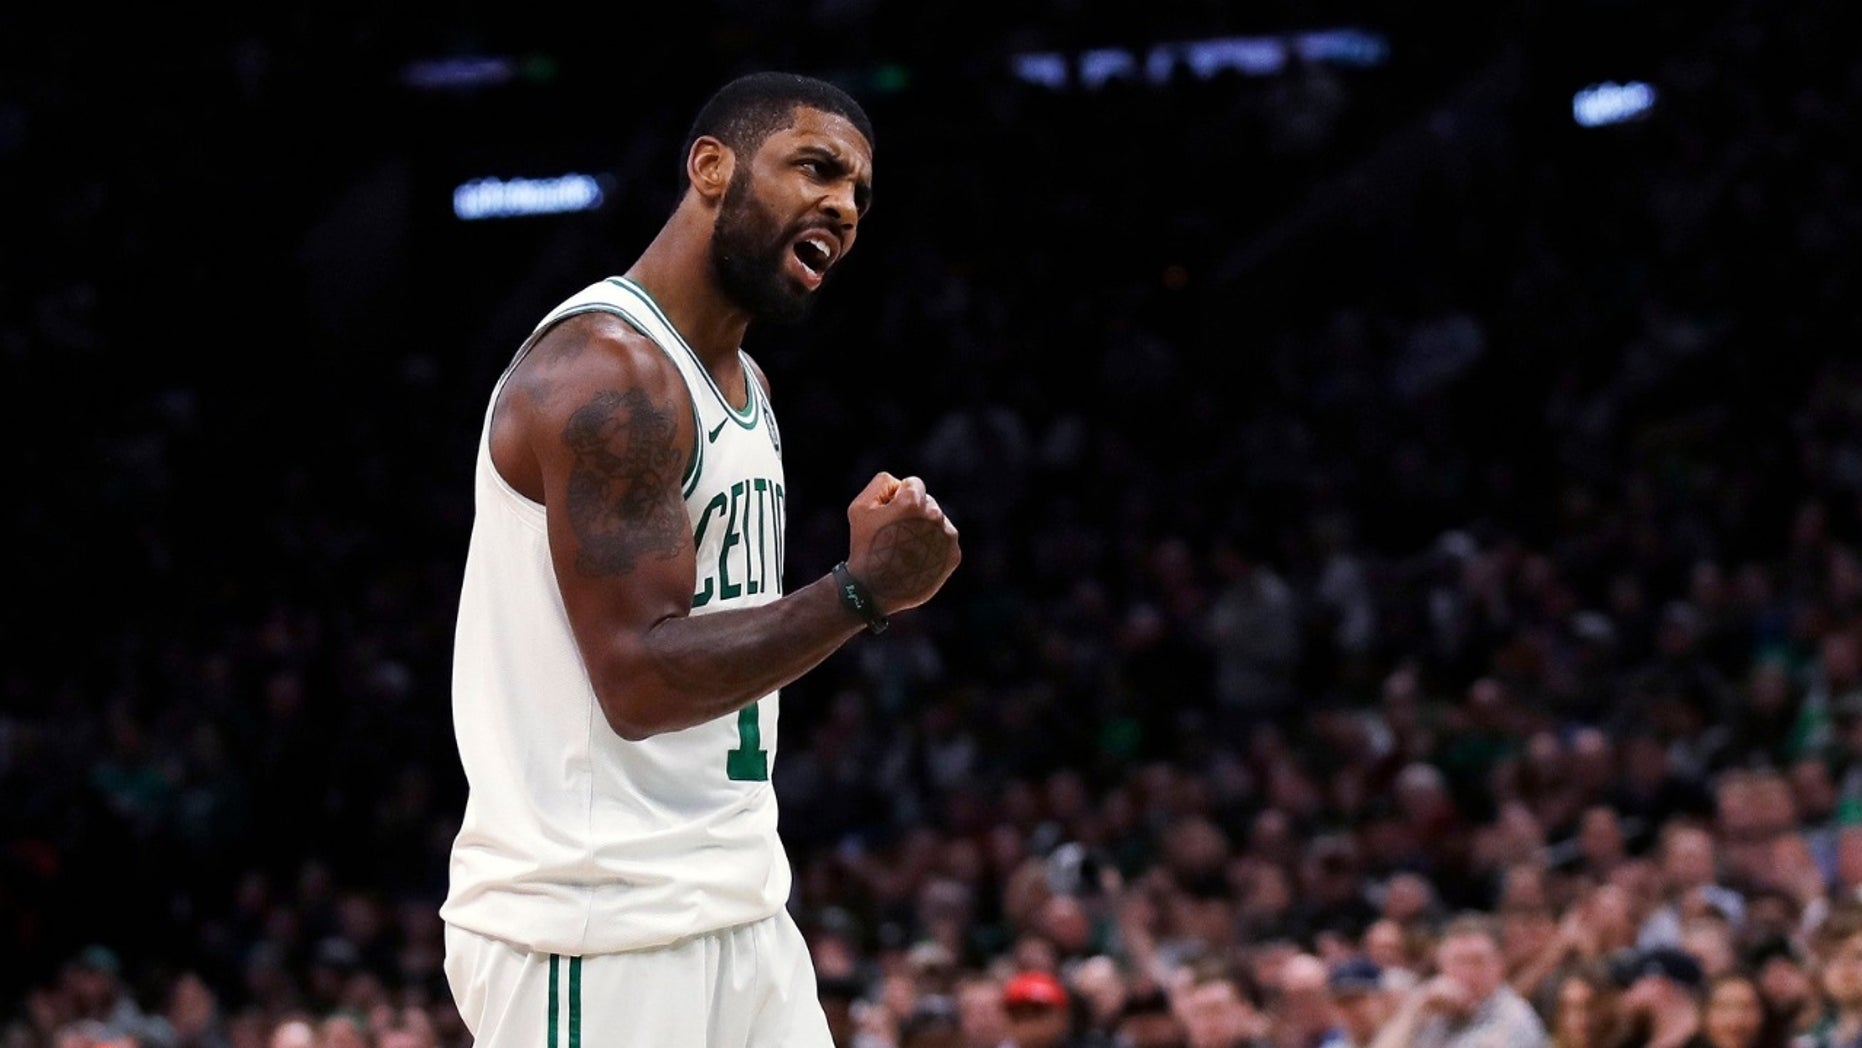 Celtics star Irving apologises after 'F*** THANKSGIVING' comments